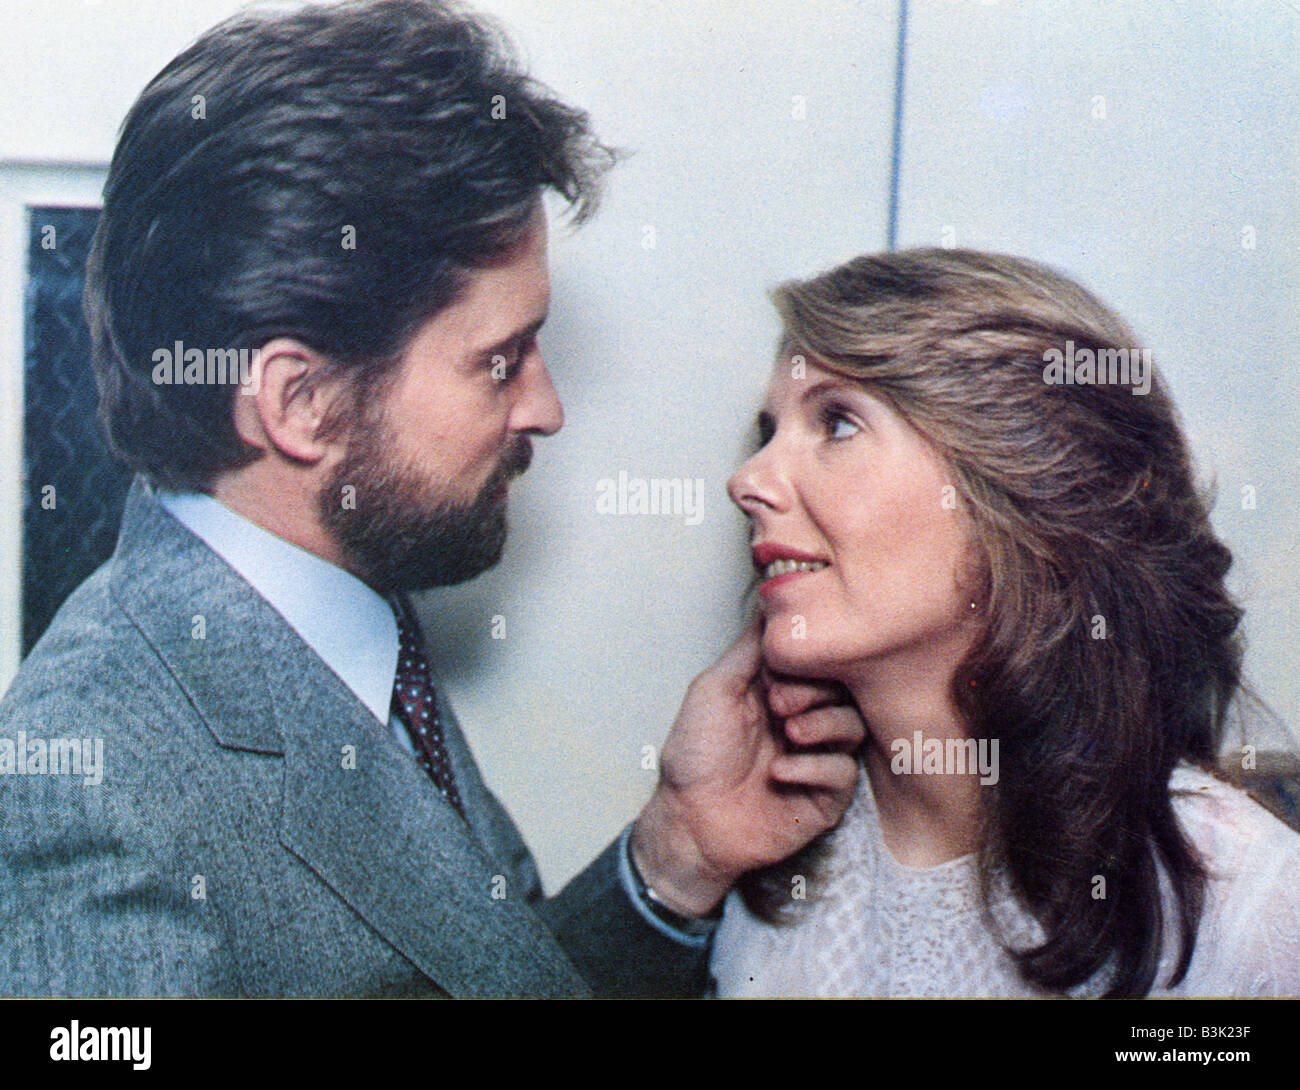 IT'S MY TURN  1980 Columbia film with Jill Clayburgh and Michael Douglas - Stock Image